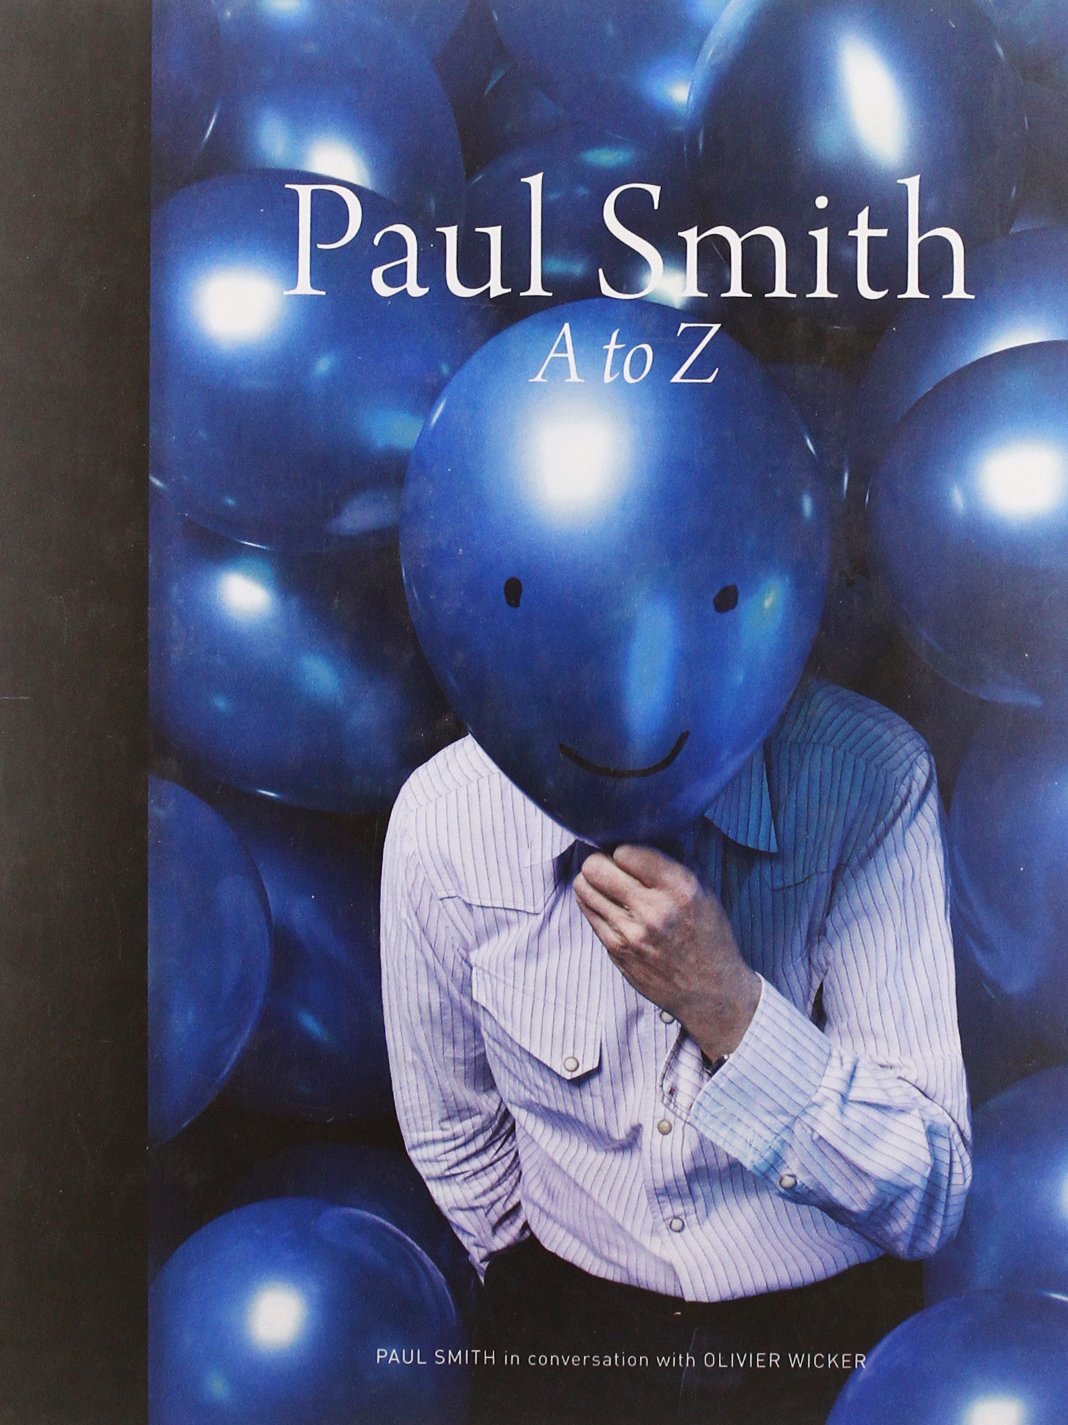 Paul Smith A to Z.jpg